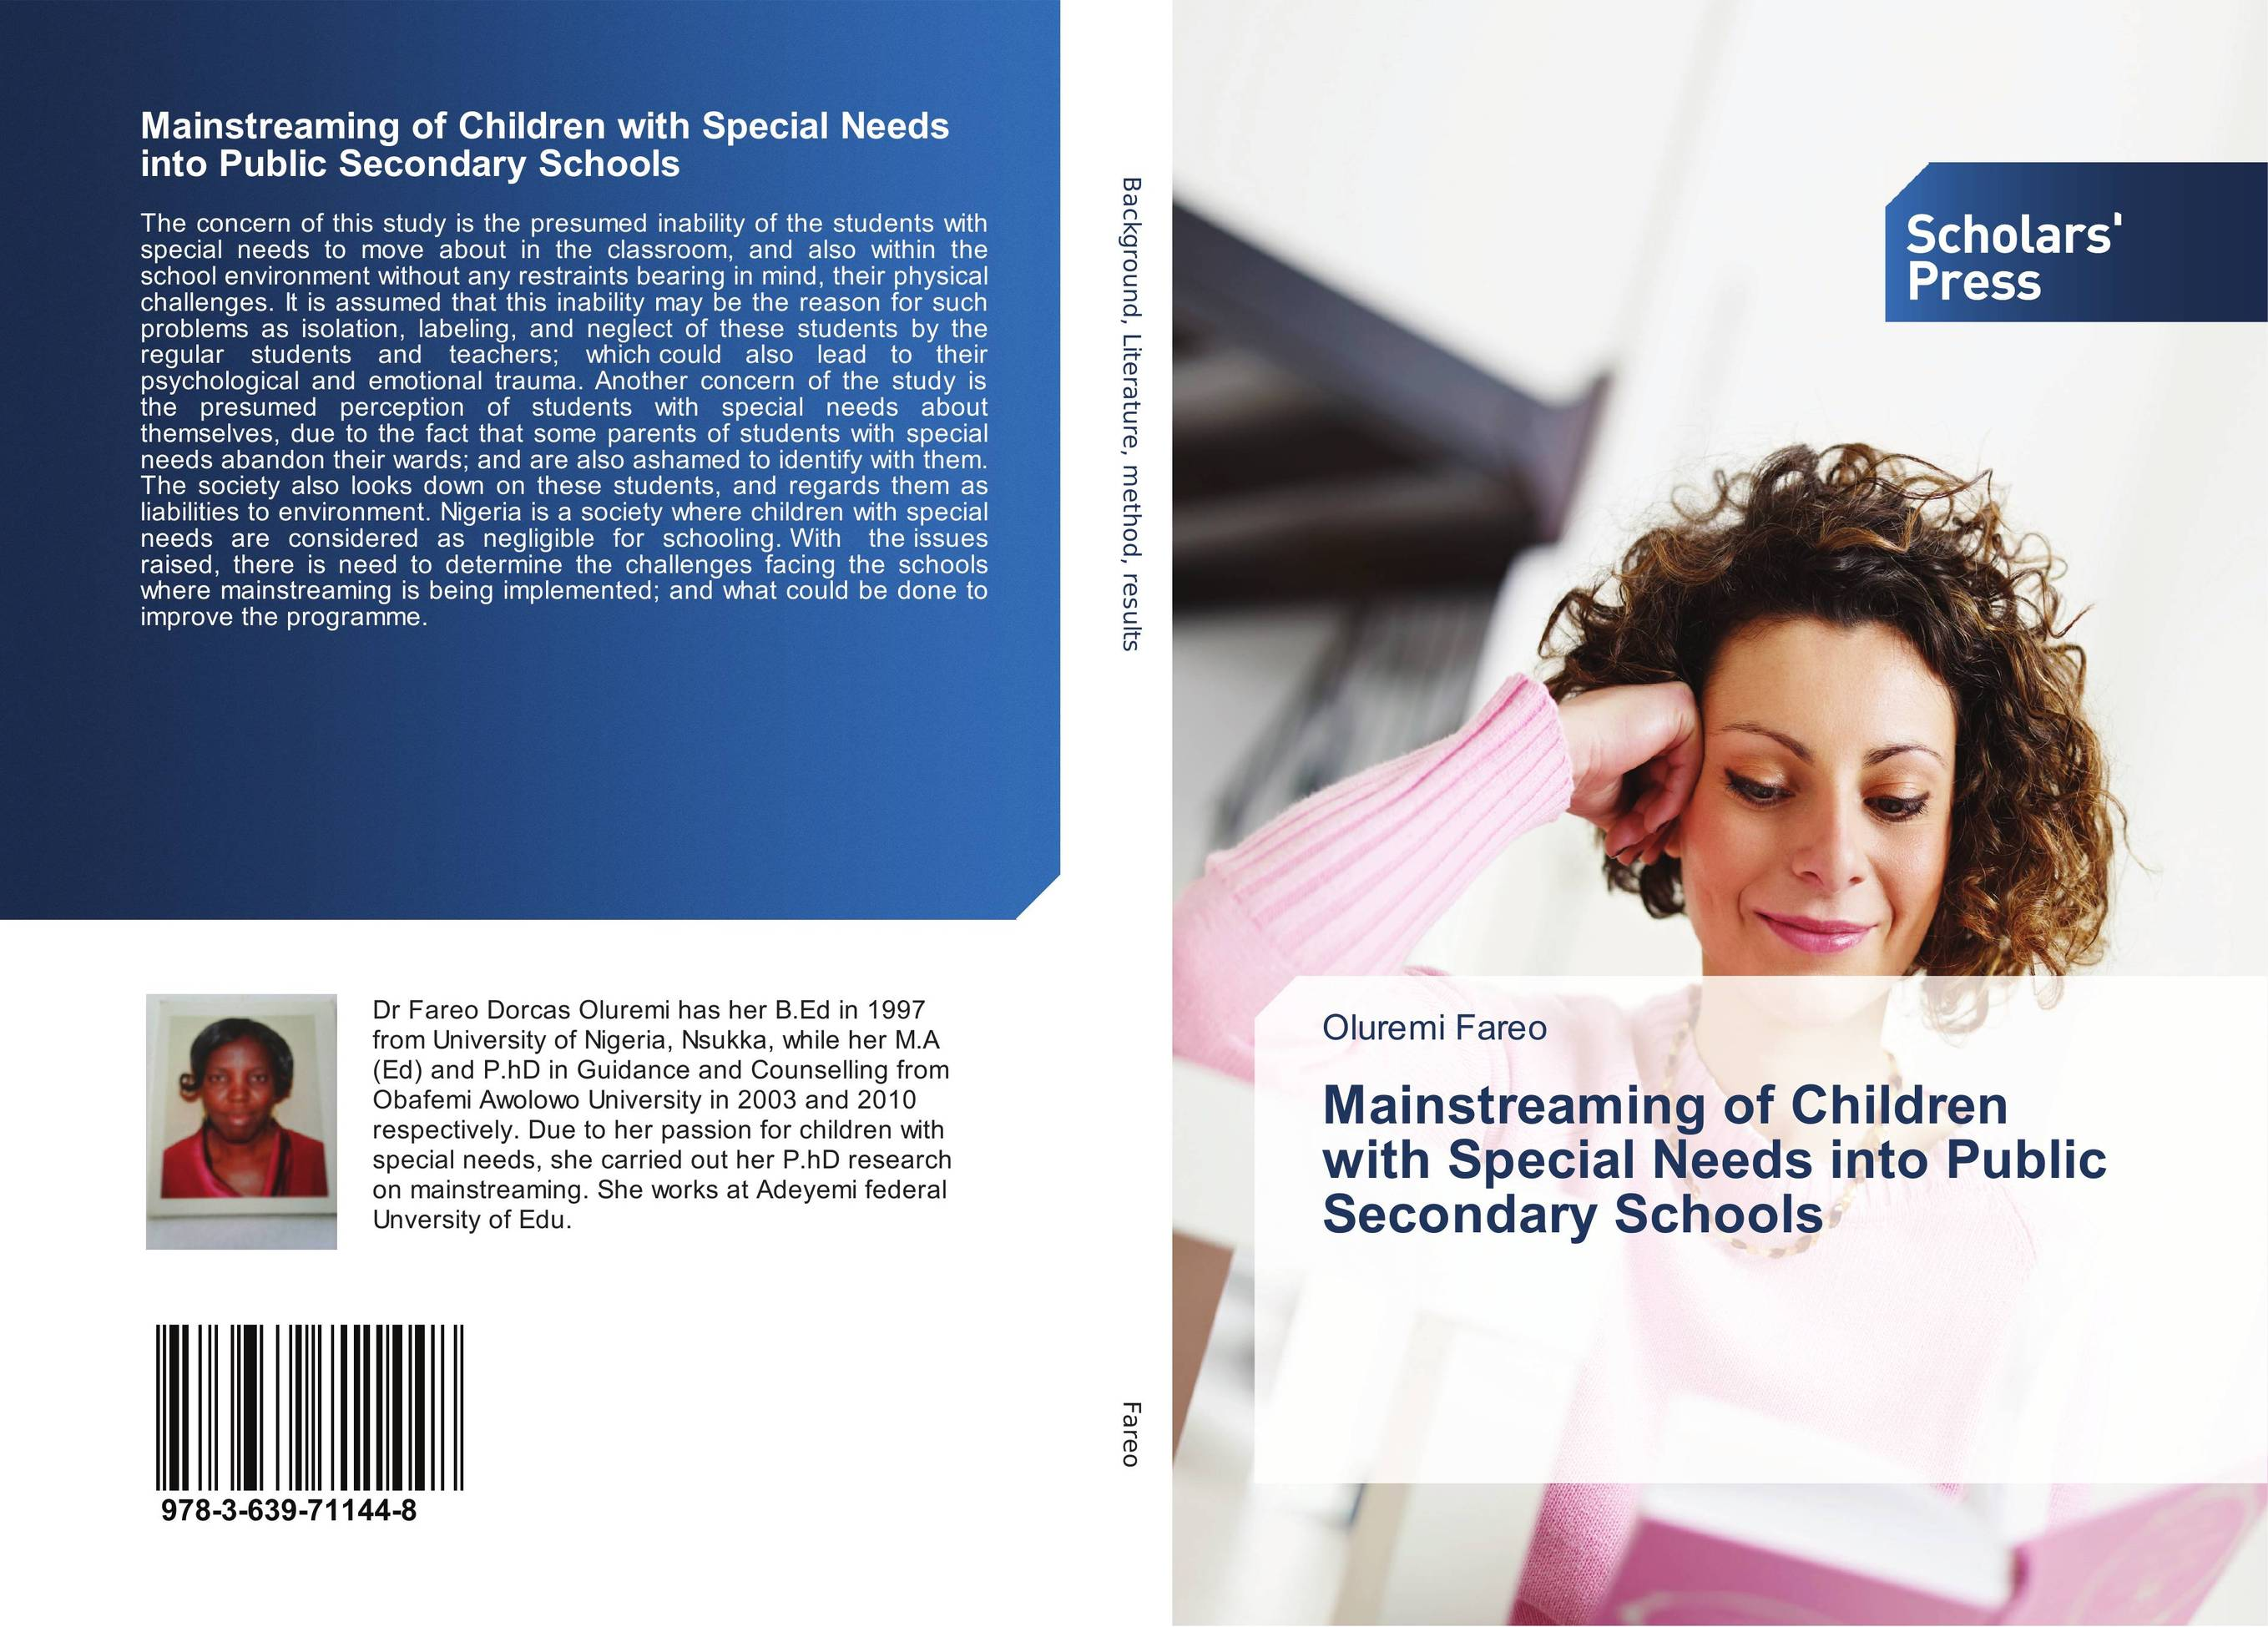 psychology of children with special needs Whereas the inclusion of children with special needs in regular classrooms has gained increasing advocacy, teachers' attitudes vary previous studies examining teacher attitudes have focused on primary and secondary schools in the western world, and little is known about early childhood settings.